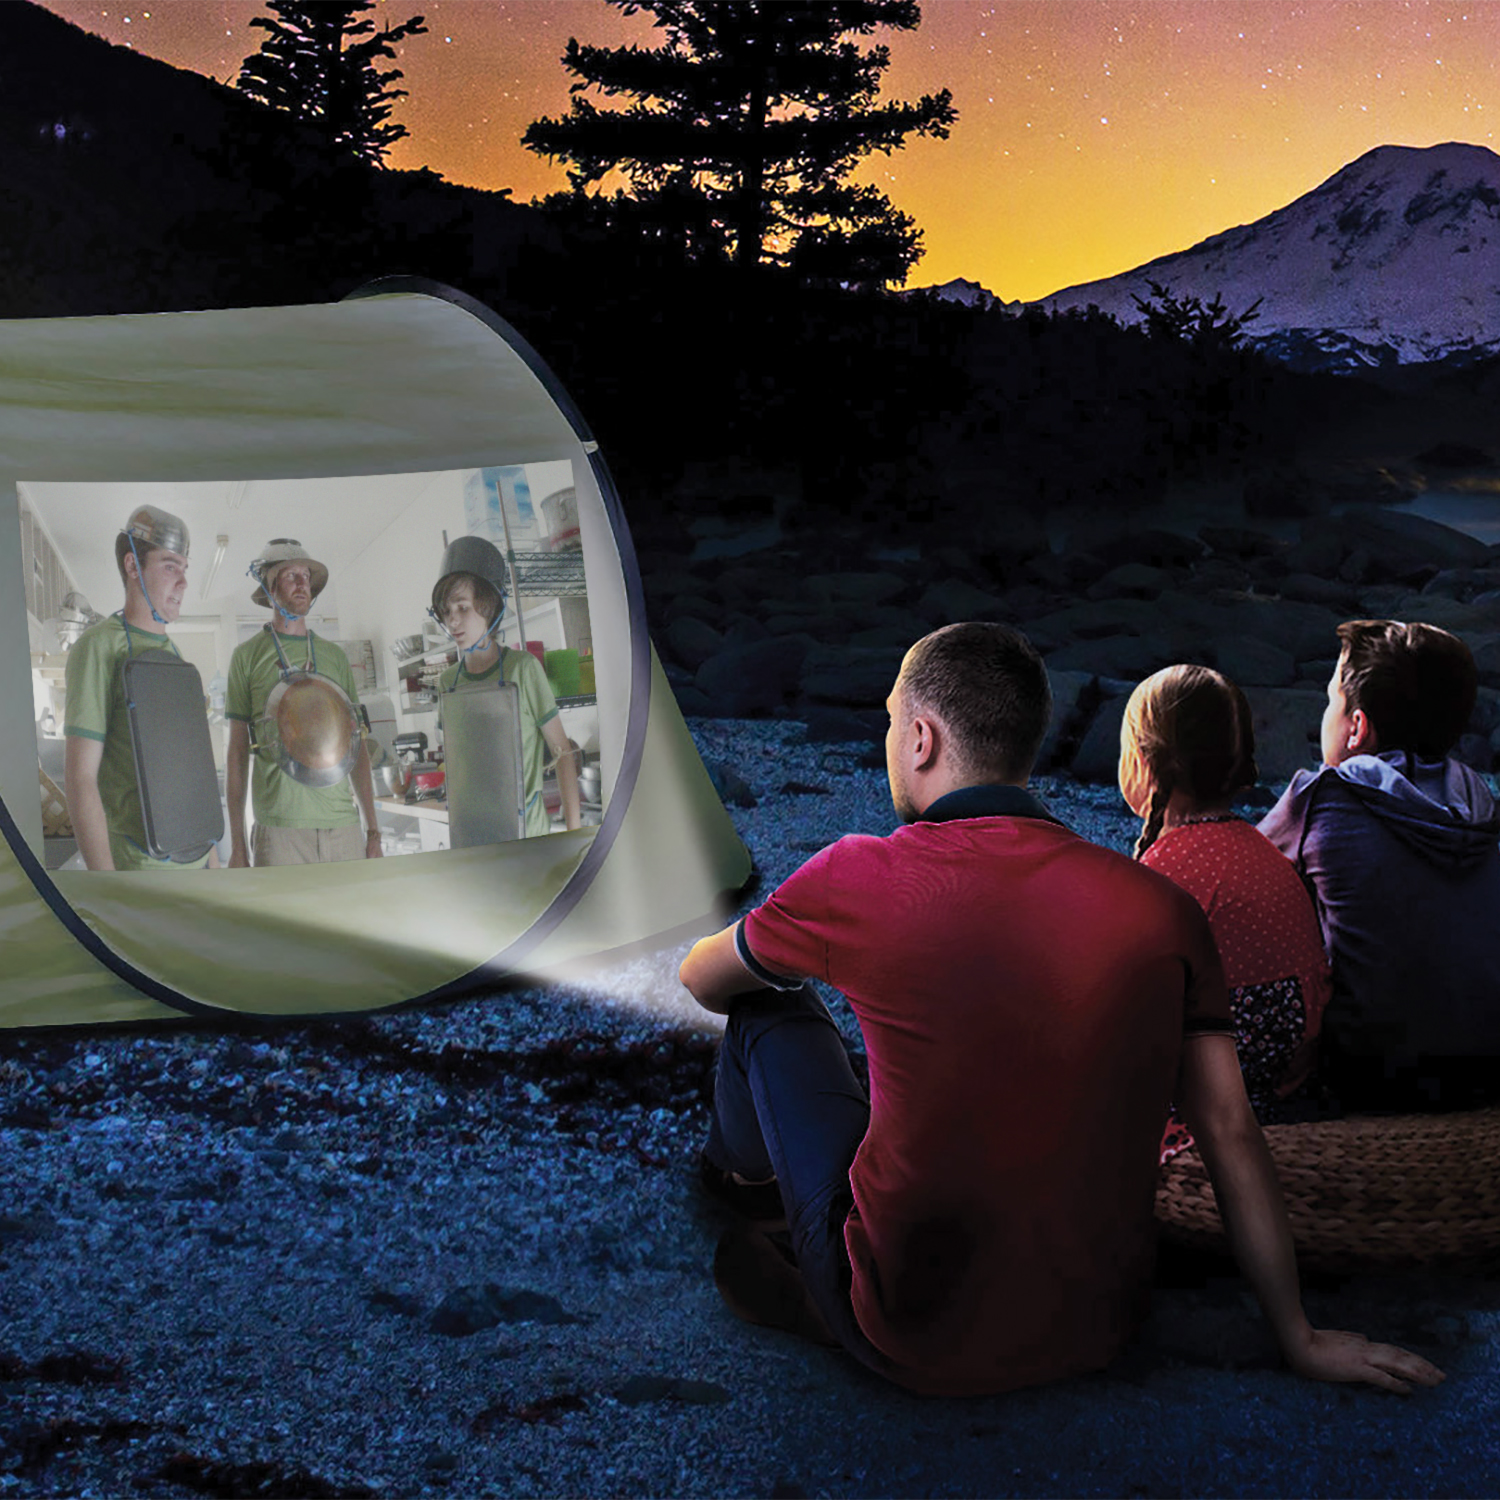 TheCINEMOOD Projector lets anywhere become a virtual theater!